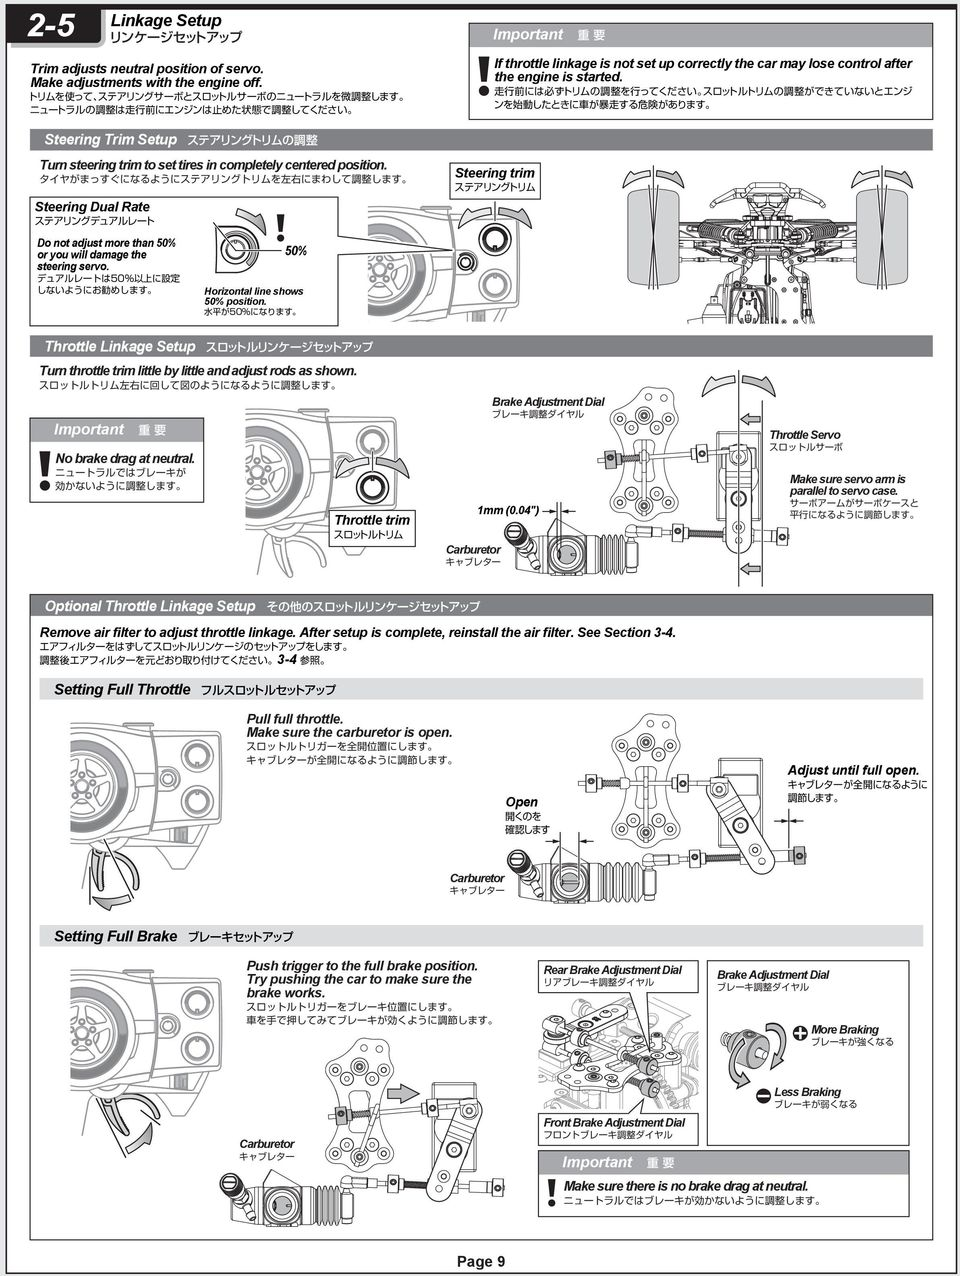 Important If throttle linkage is not set up correctly the car may lose control after the engine is started.